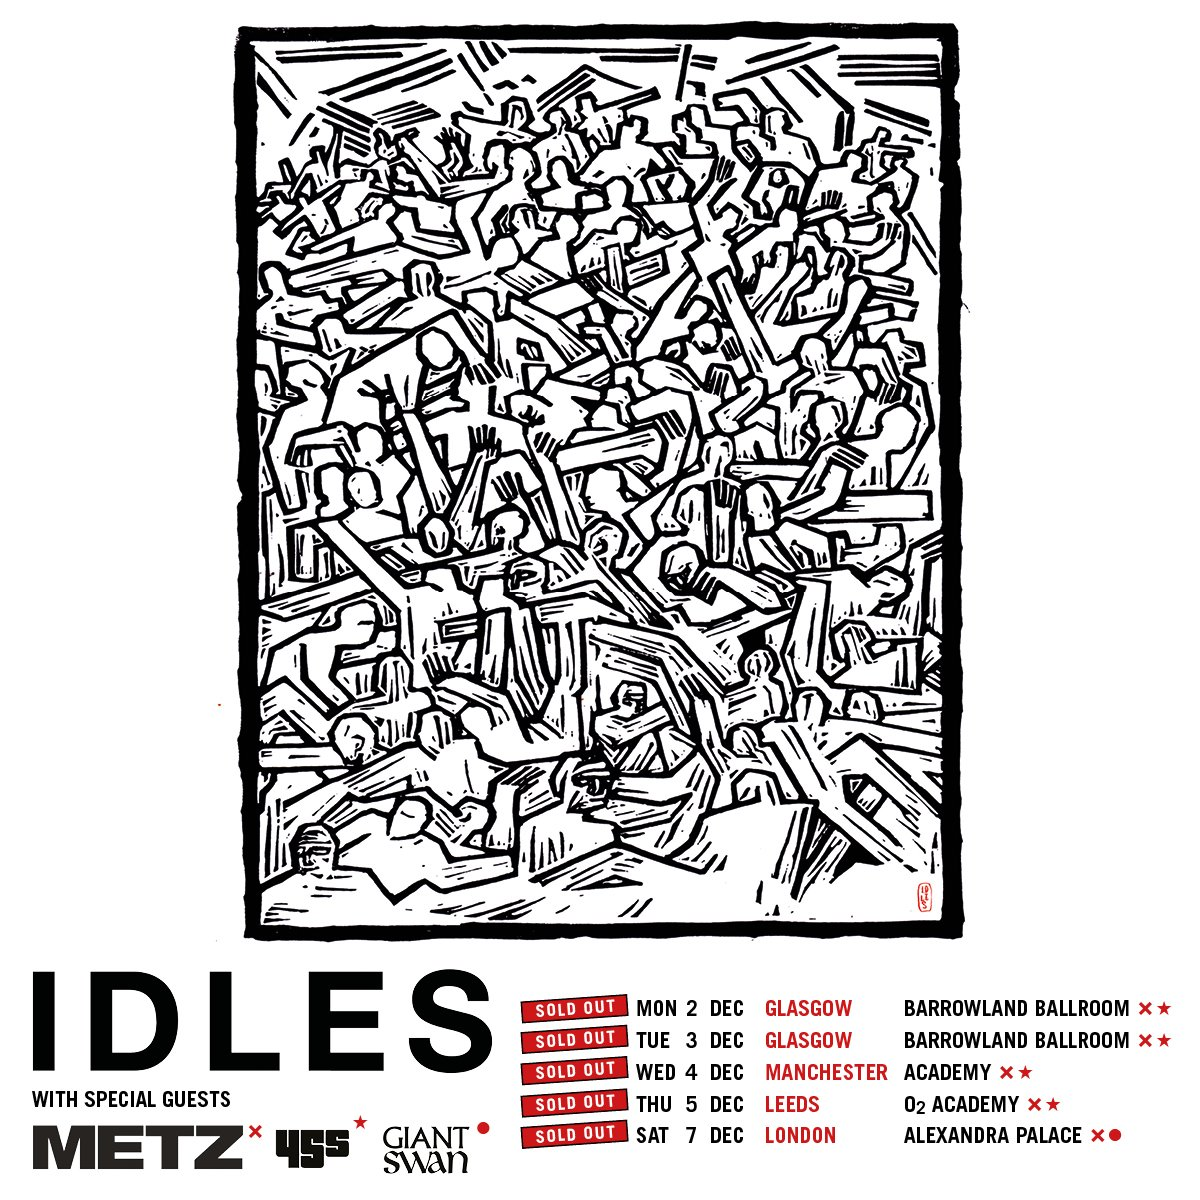 NEWS// 🚨 Support acts confirmed for @idlesband sold out out UK tour! @METZtheband |@45sband | @GiantGiantSwan 🔥